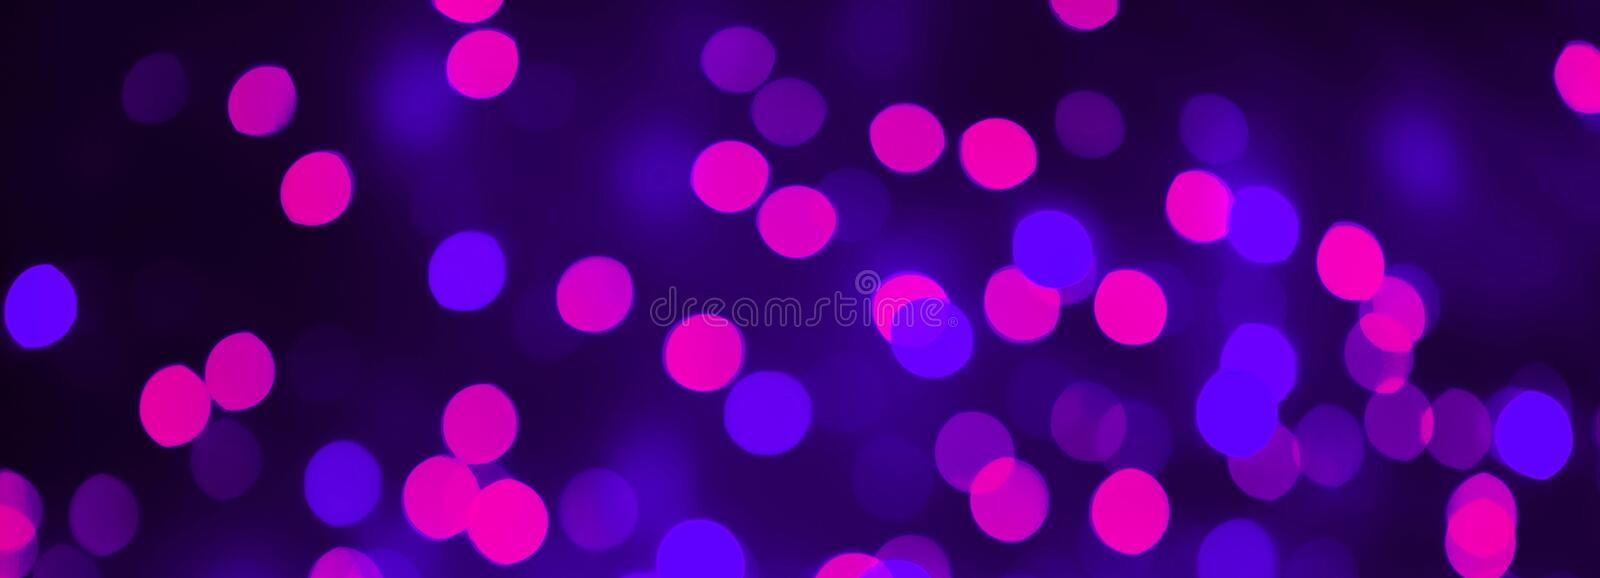 Beautiful Bokeh Purple and blue light Background. Panoramic Decorative Holiday Texture. Backdrop for design. Blurred Festive light stock photo